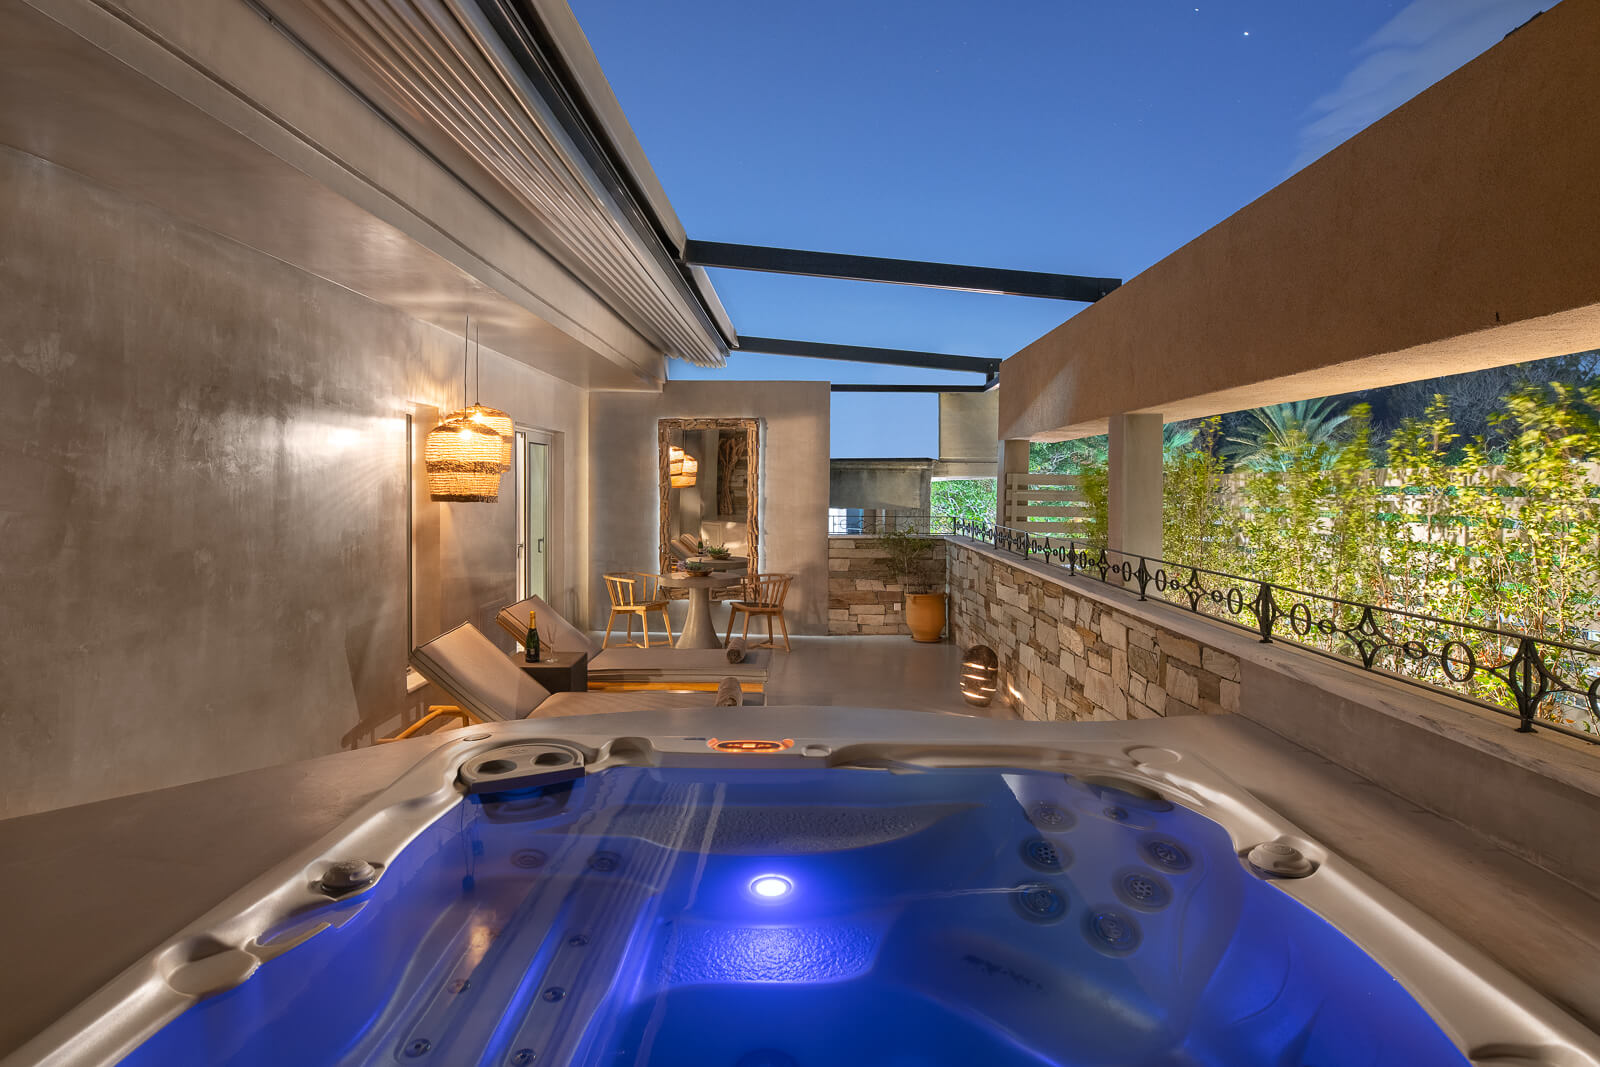 Helios-Suite-with-Private-Outdoor-Hot-Tub-Elakati-Hotel-in-Rhodes-Greece